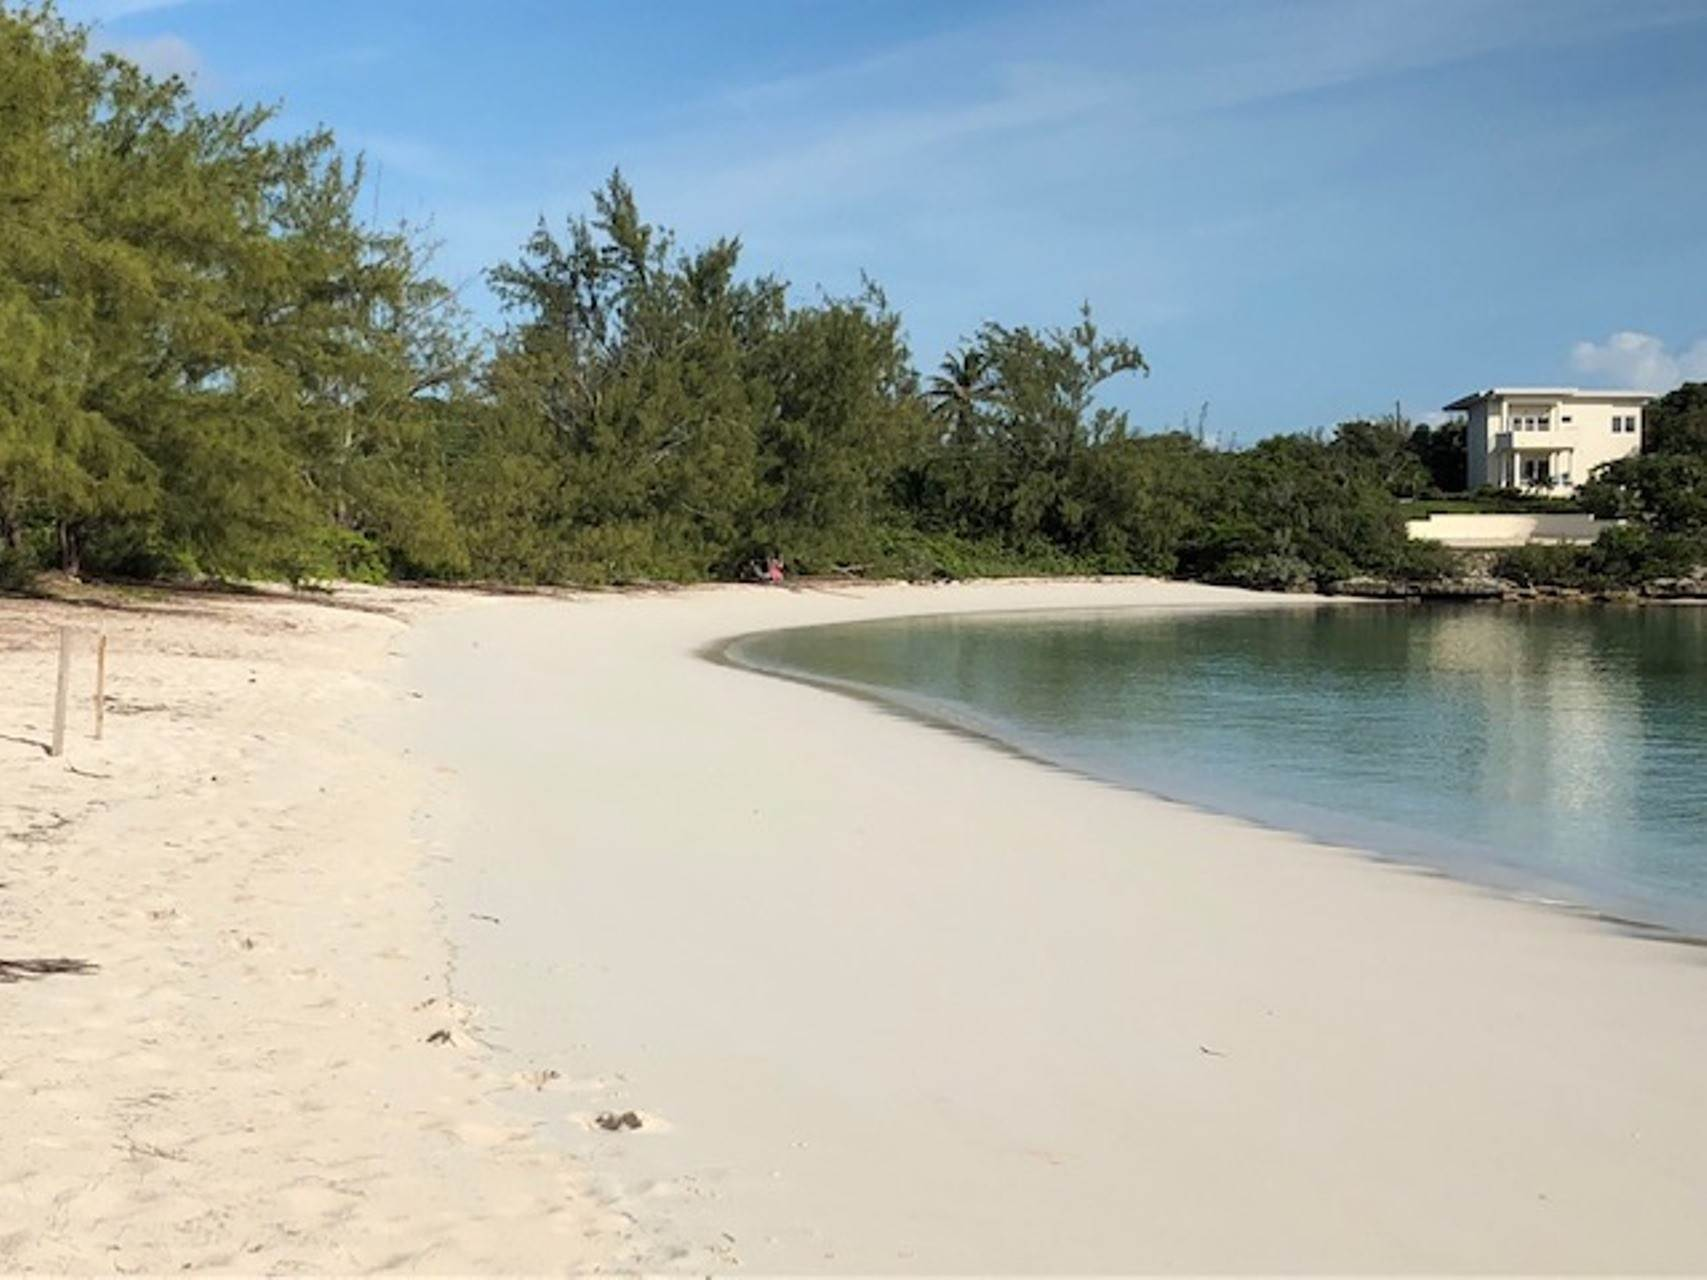 Single Family Homes for Sale at Unfinished House for Sale Near Jolly Hall Beach - MLS 35899 Bahama Sound, Exuma, Bahamas